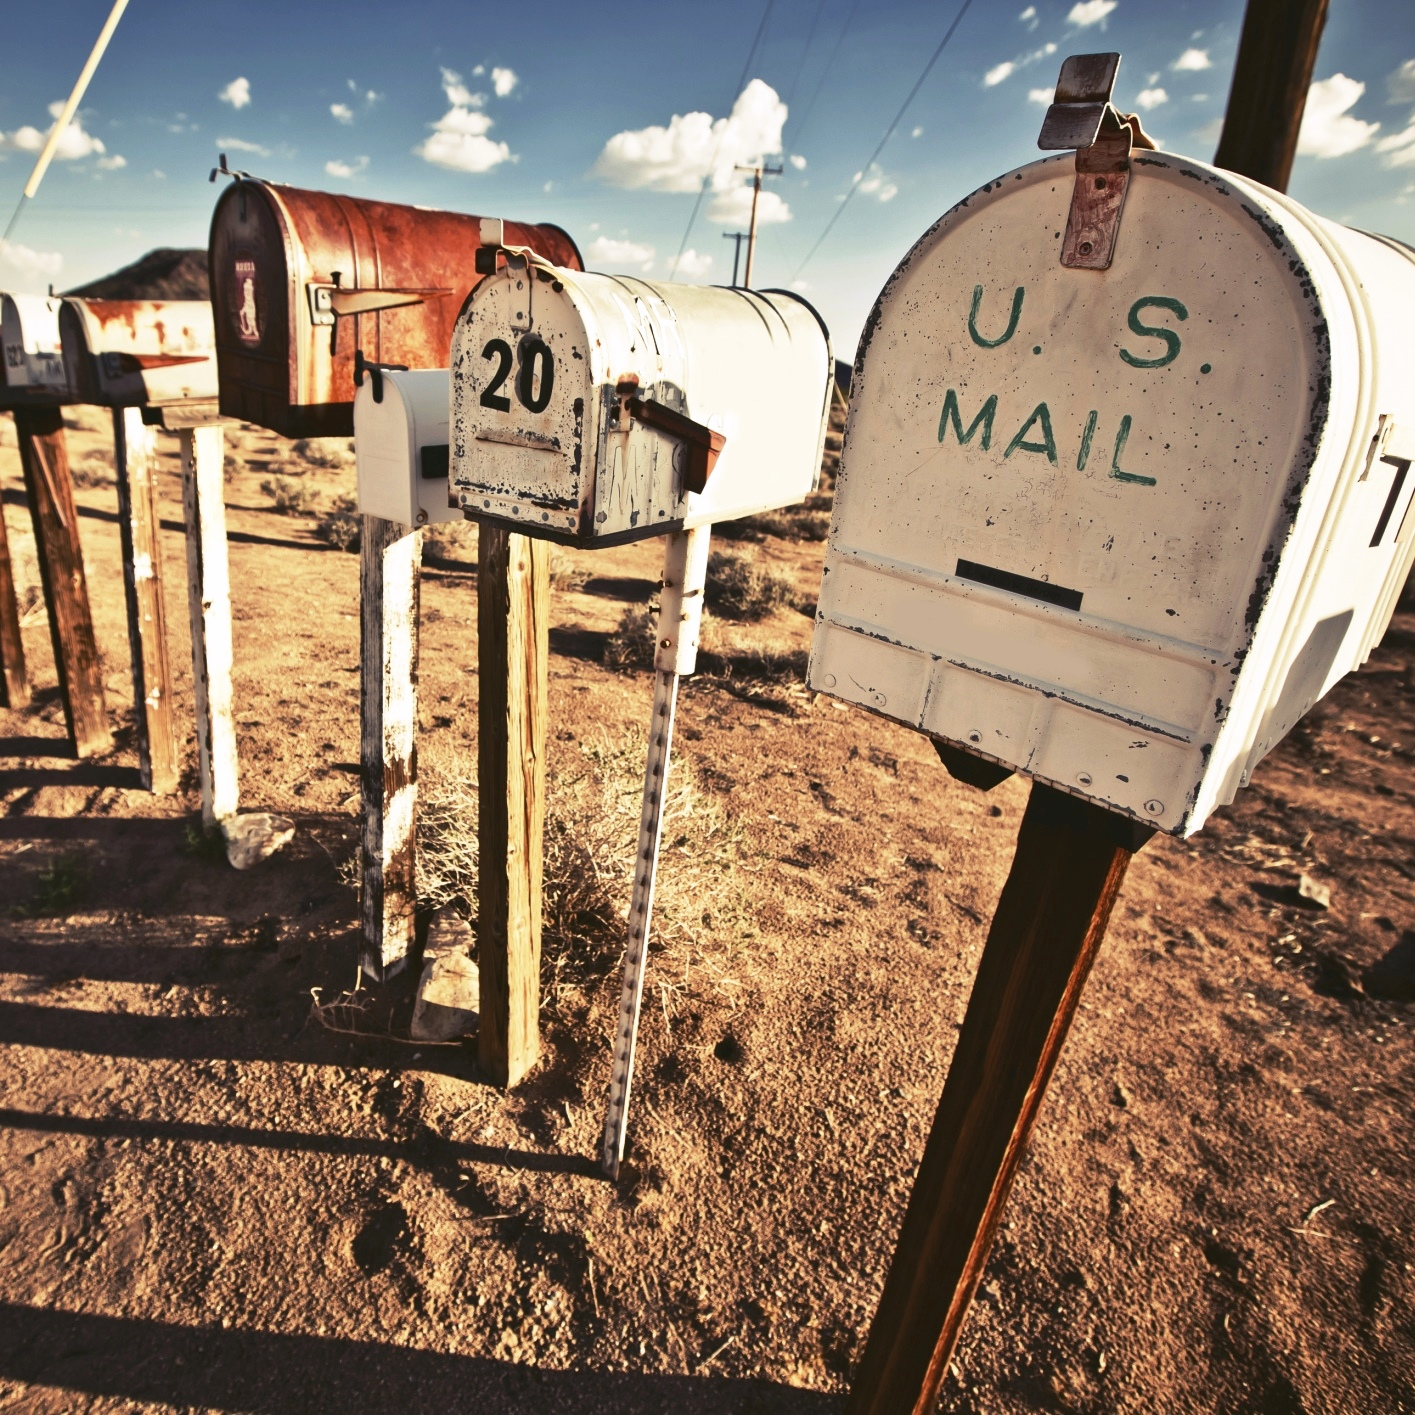 To Save the Post Office, It Has to Be Tremendously Downsized